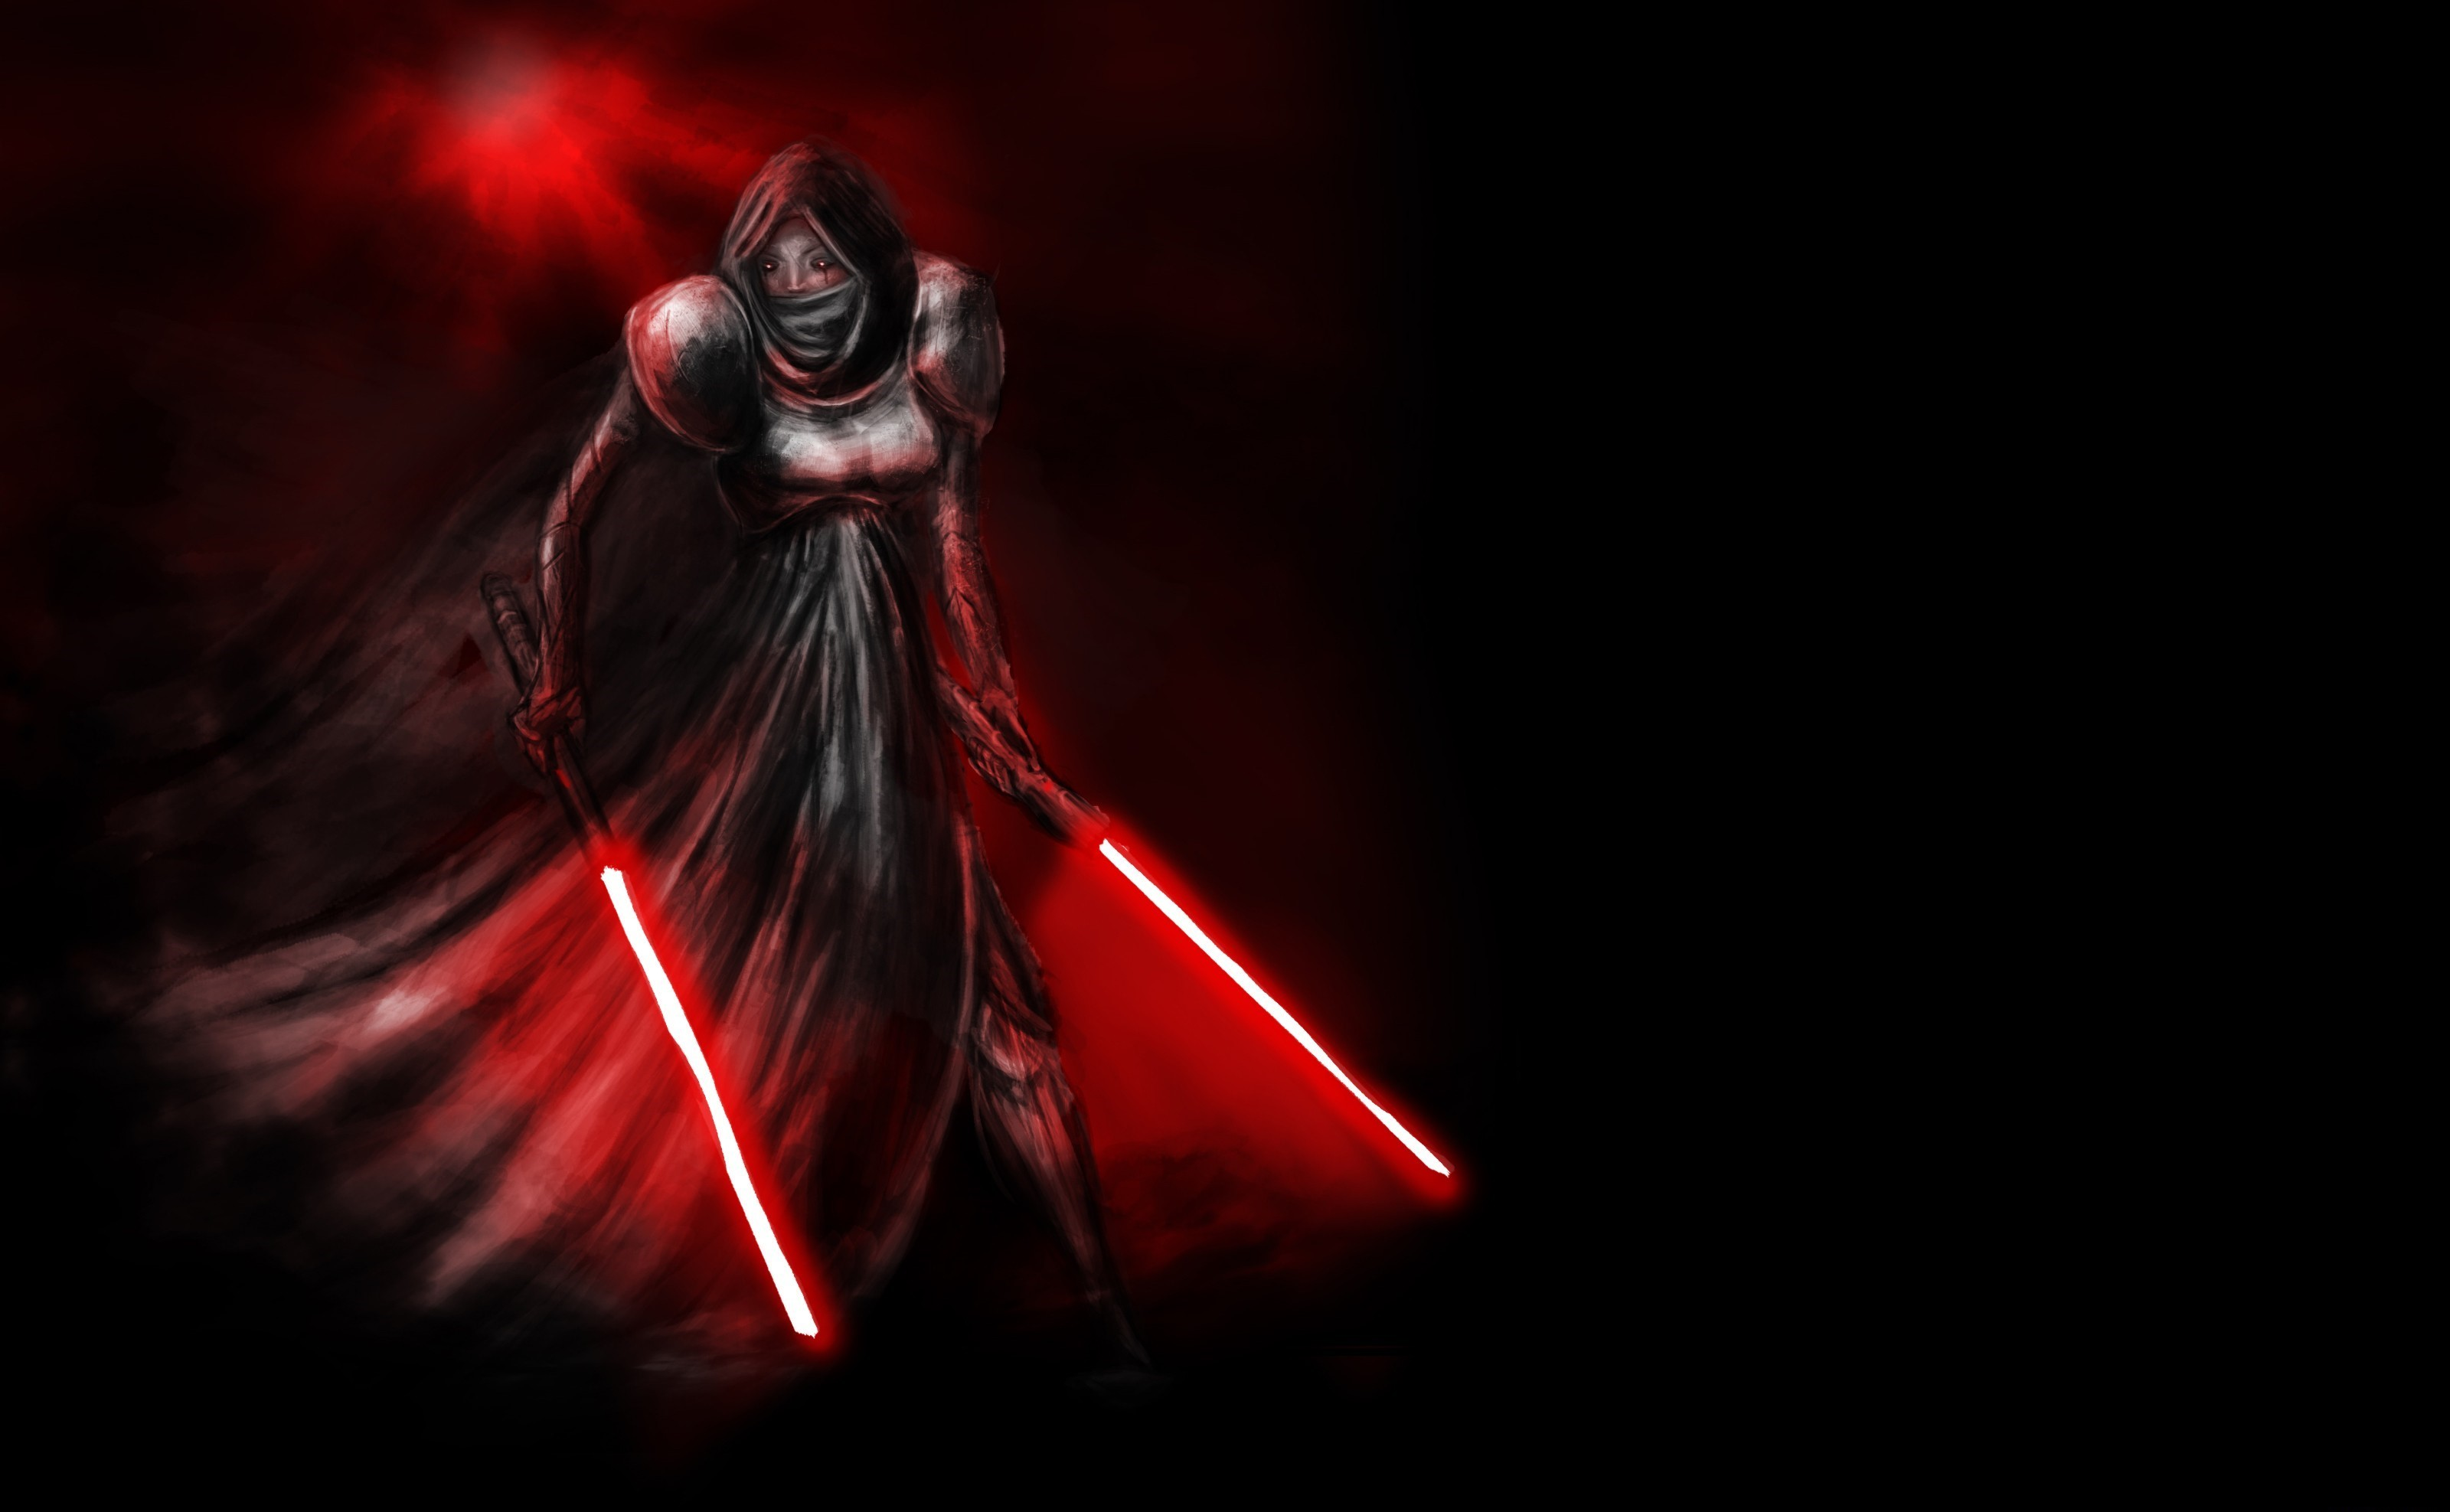 Star Wars Lightsaber Duel Wallpaper ·① WallpaperTag